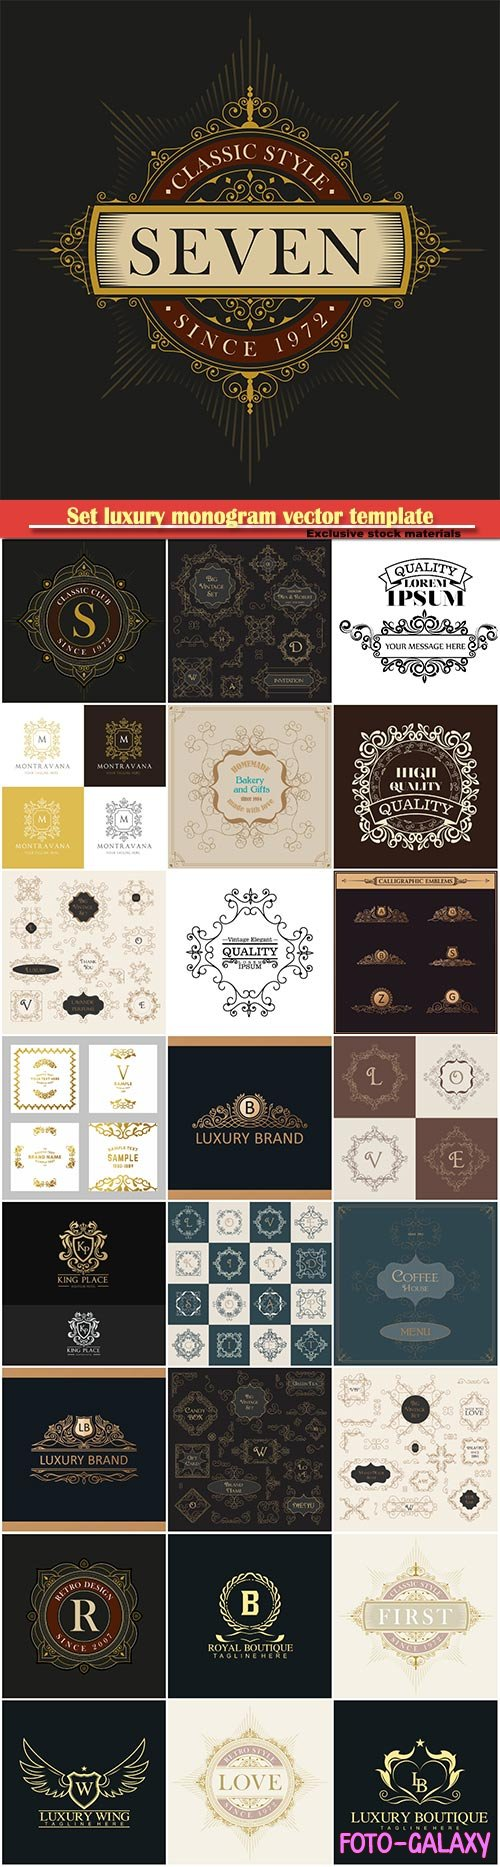 Set luxury monogram vector template, logos, badges, symbols